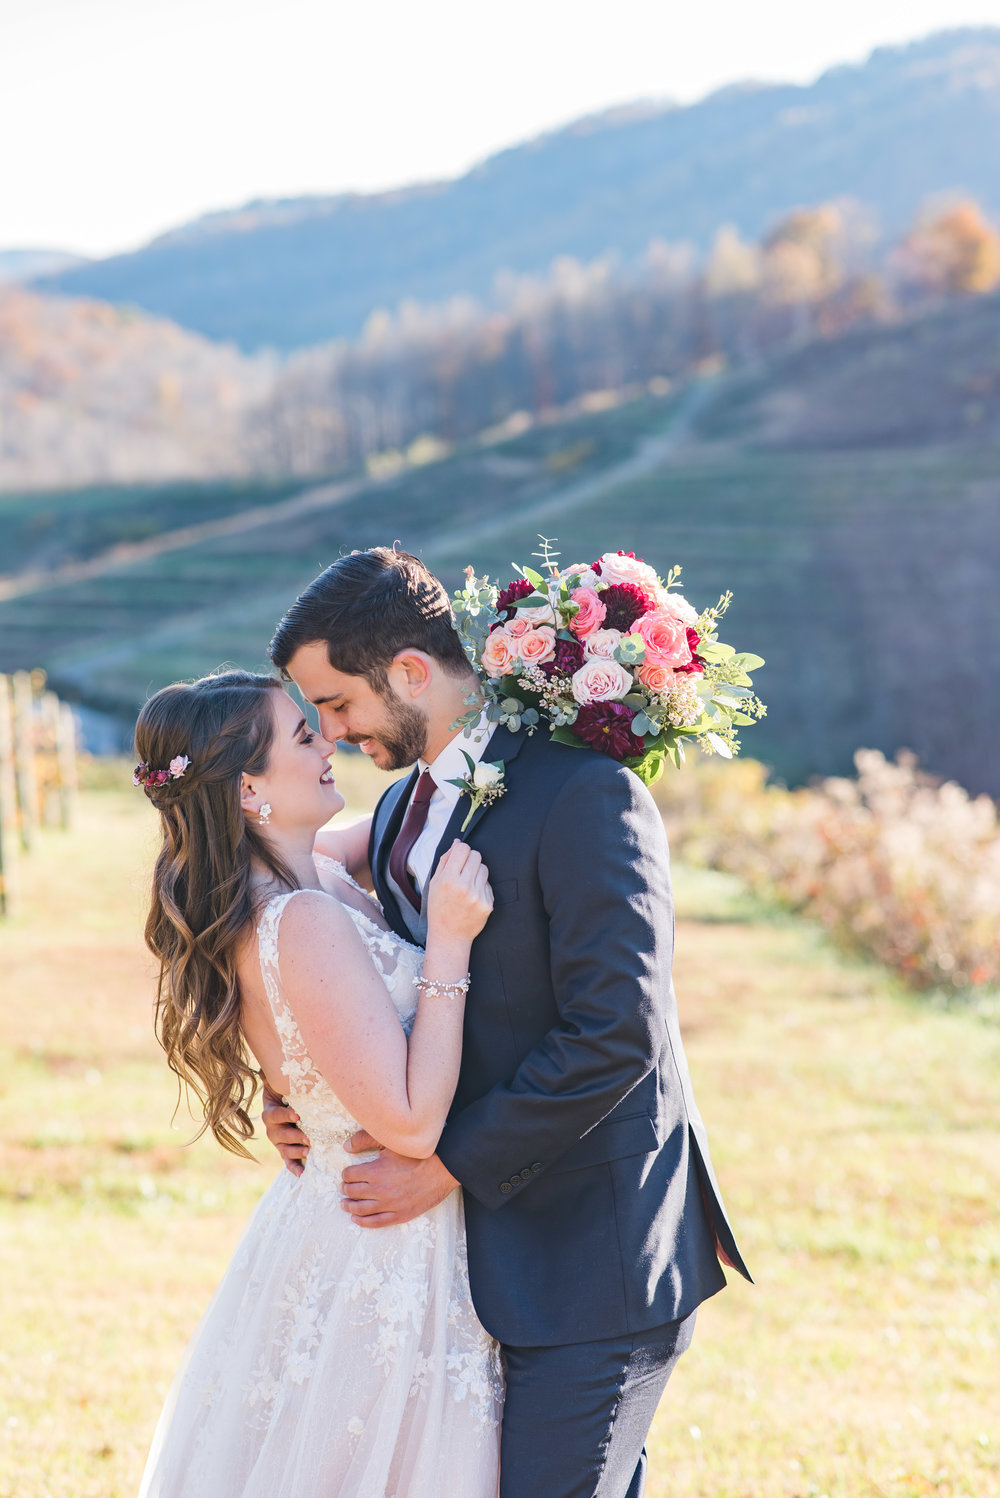 Bride and Groom portrait at a mountain vineyard.